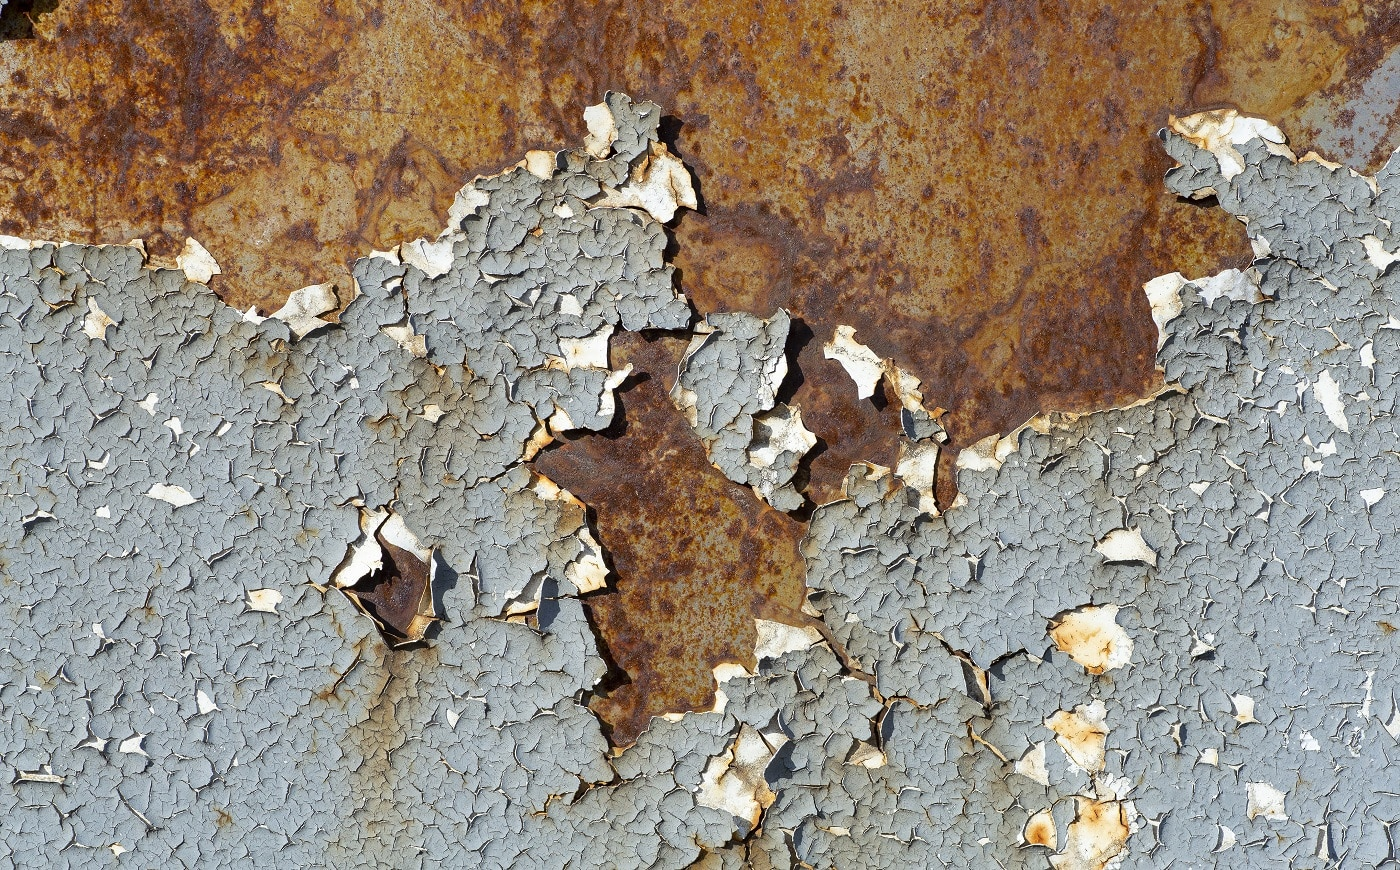 Old paint background. Texture and pattern of peeling dried old paint on the wall. Old painted wall background.